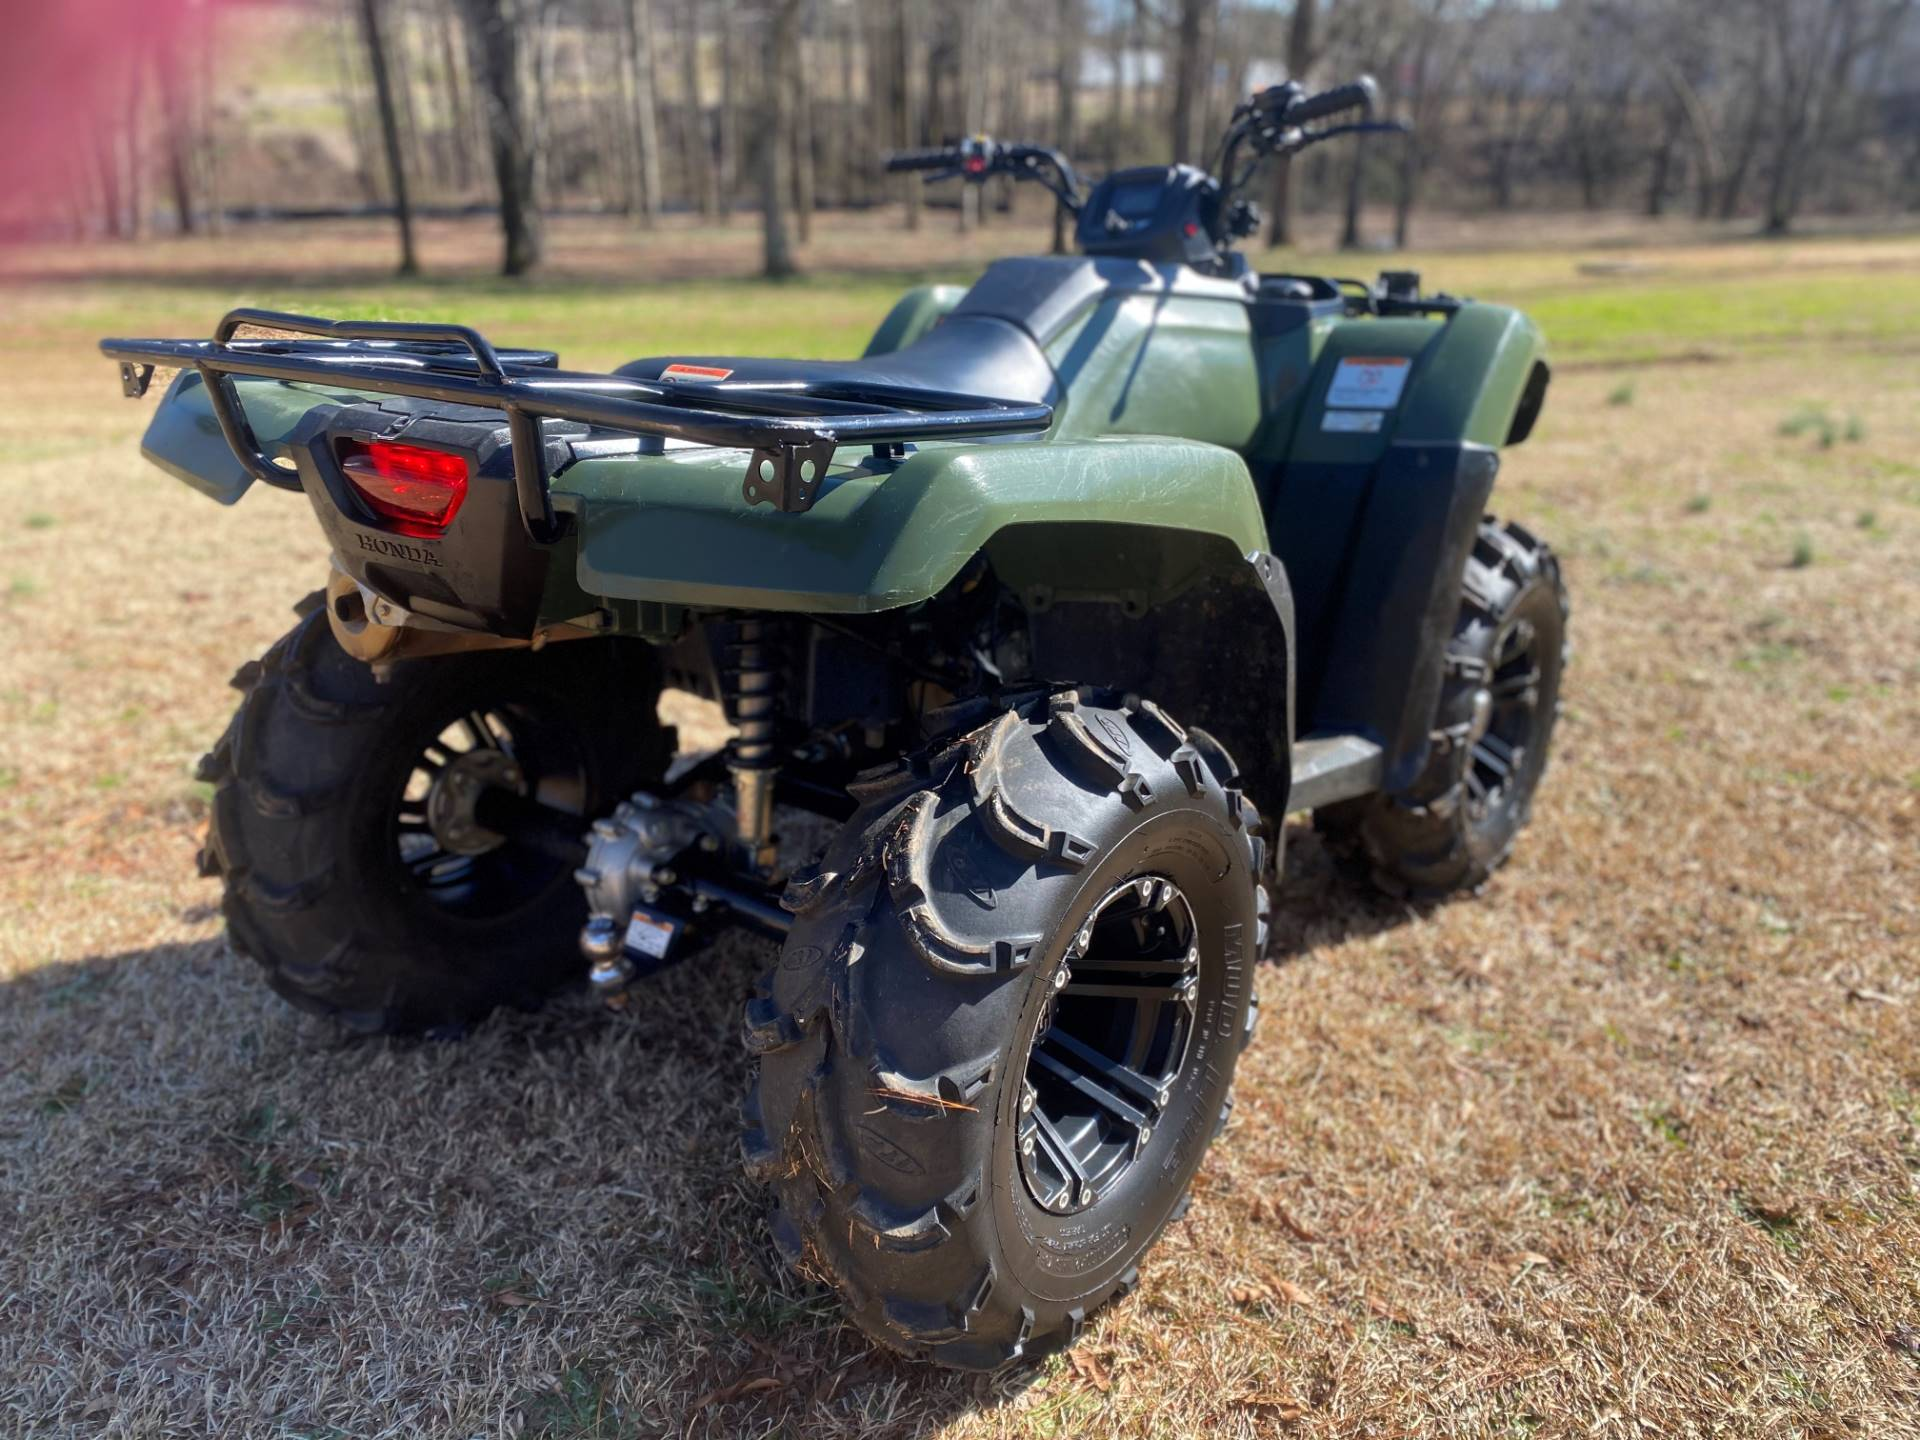 2019 Honda FourTrax Rancher 4x4 in Greer, South Carolina - Photo 9